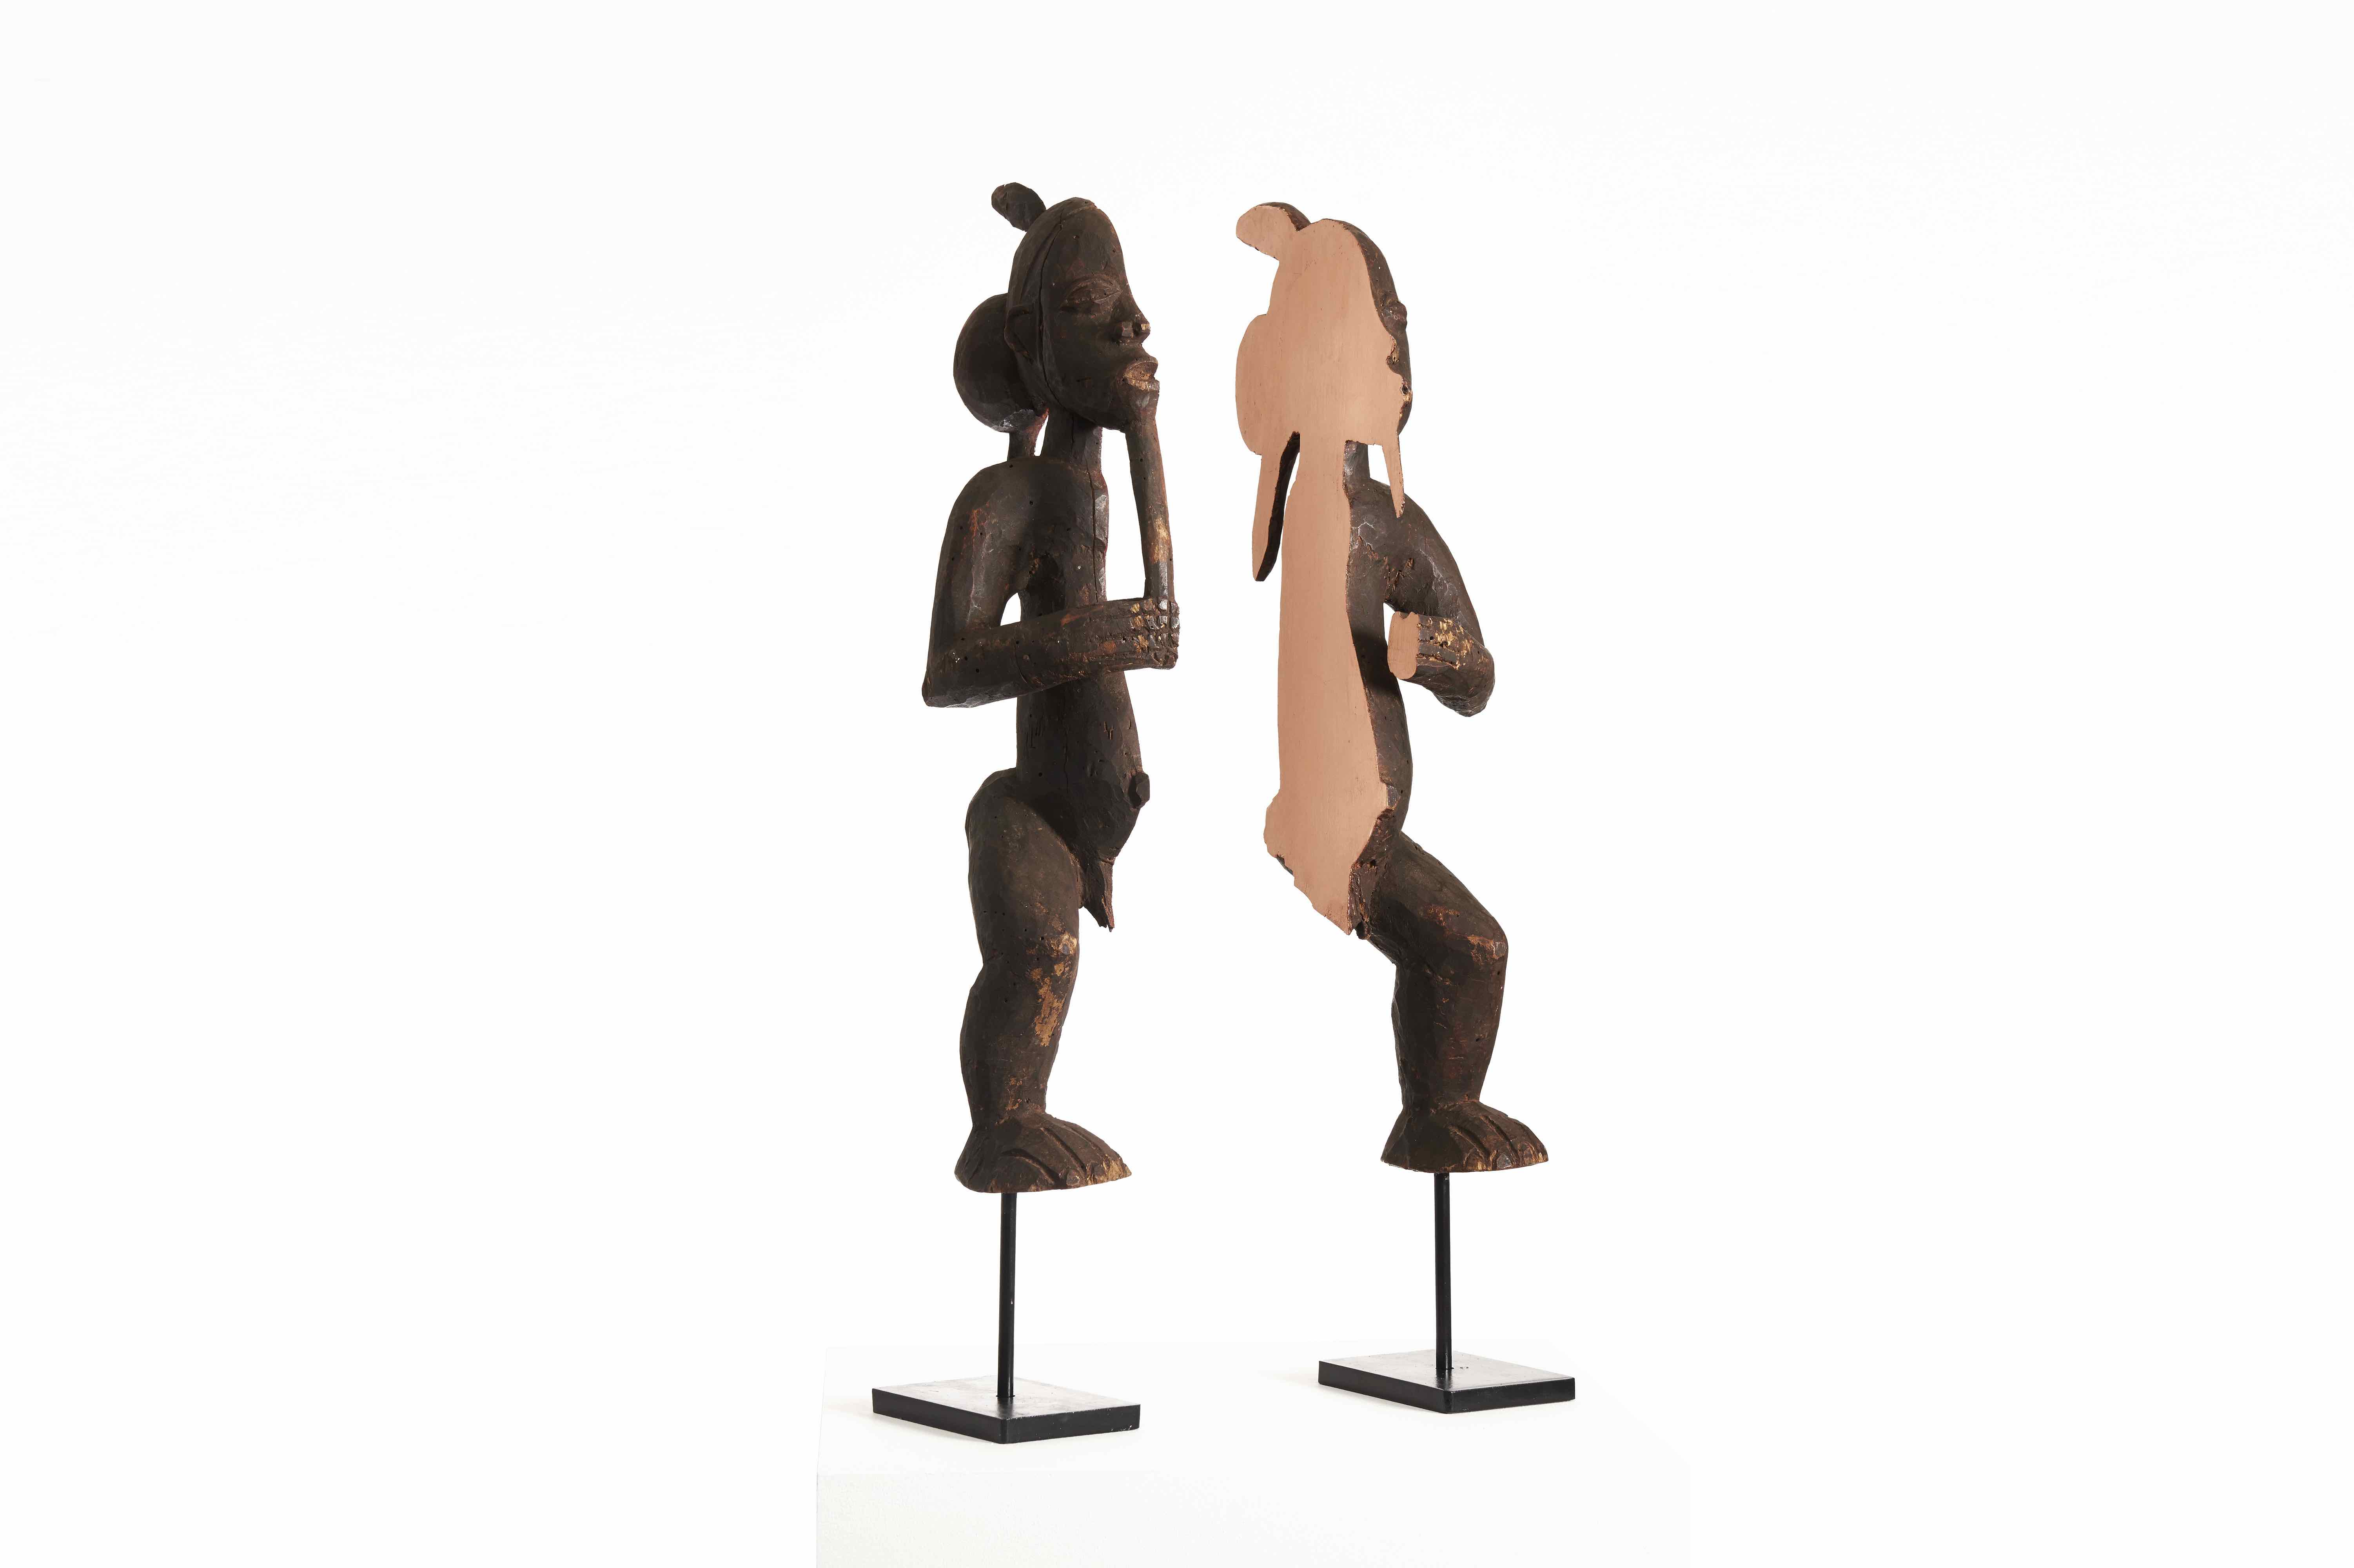 Niyi Olagunju, Lega III, 2016, Bisected wood sculpture, aluminum and copper foil, set on black patinated steel stand, Approx. 63 x 11 x 20 cm (each) / 25 x 4 x 8 in, Courtesy TAFETA